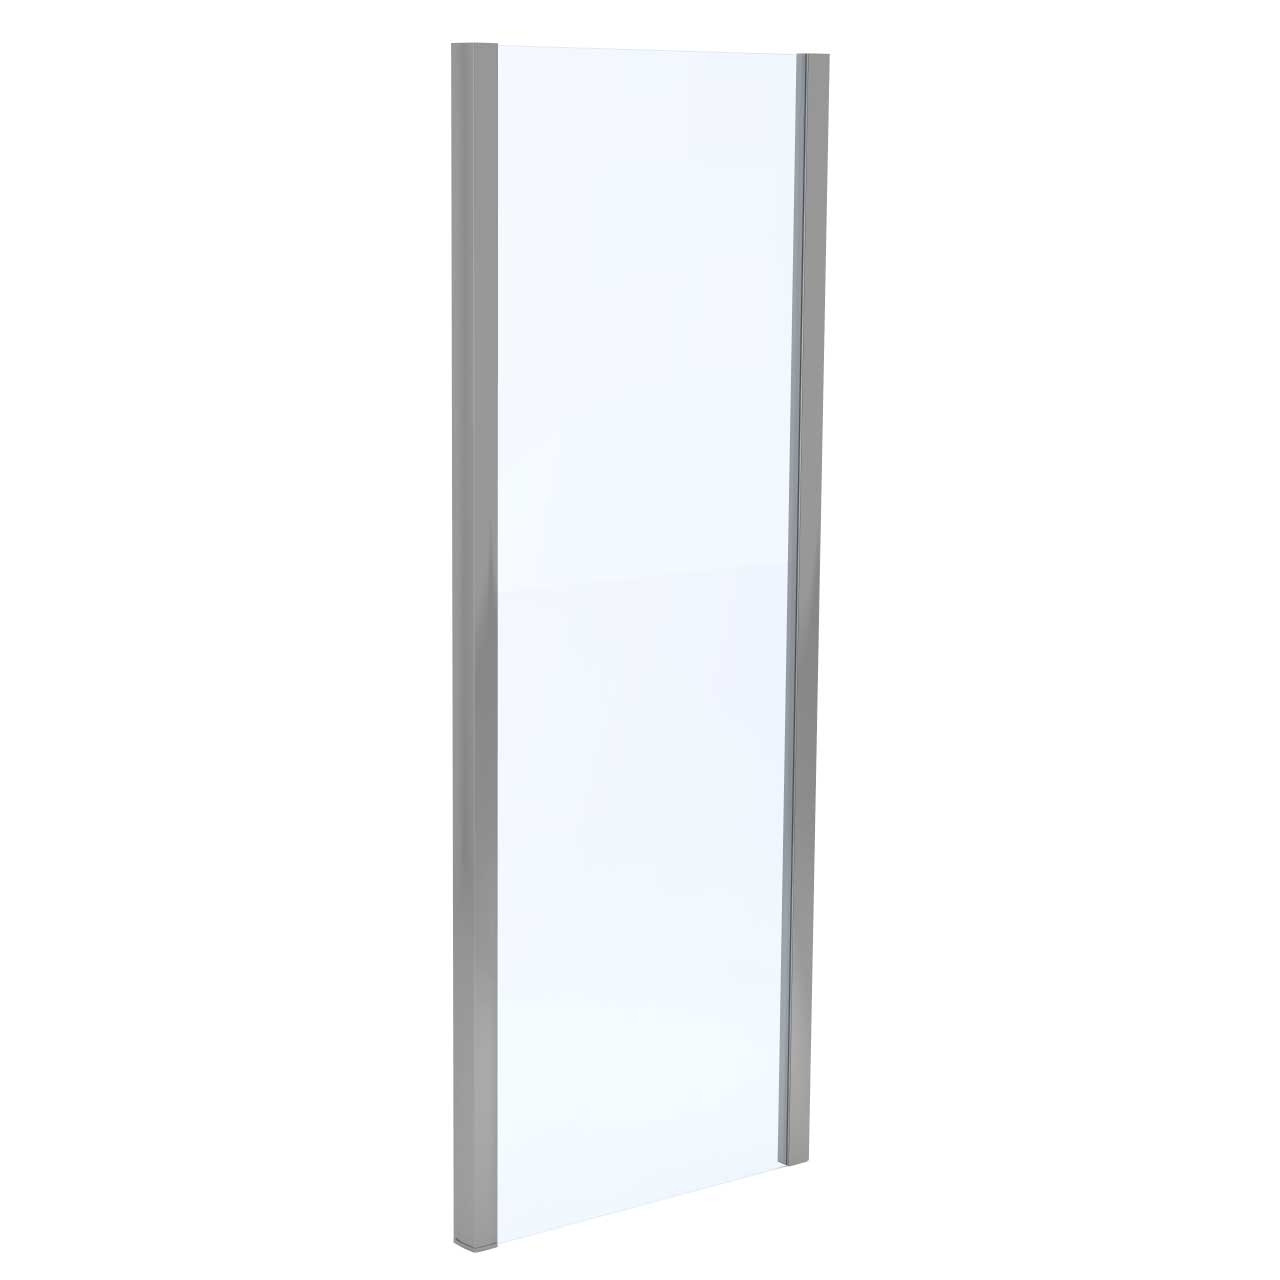 Series 6 1500mm x 700mm Sliding Door Shower Enclosure